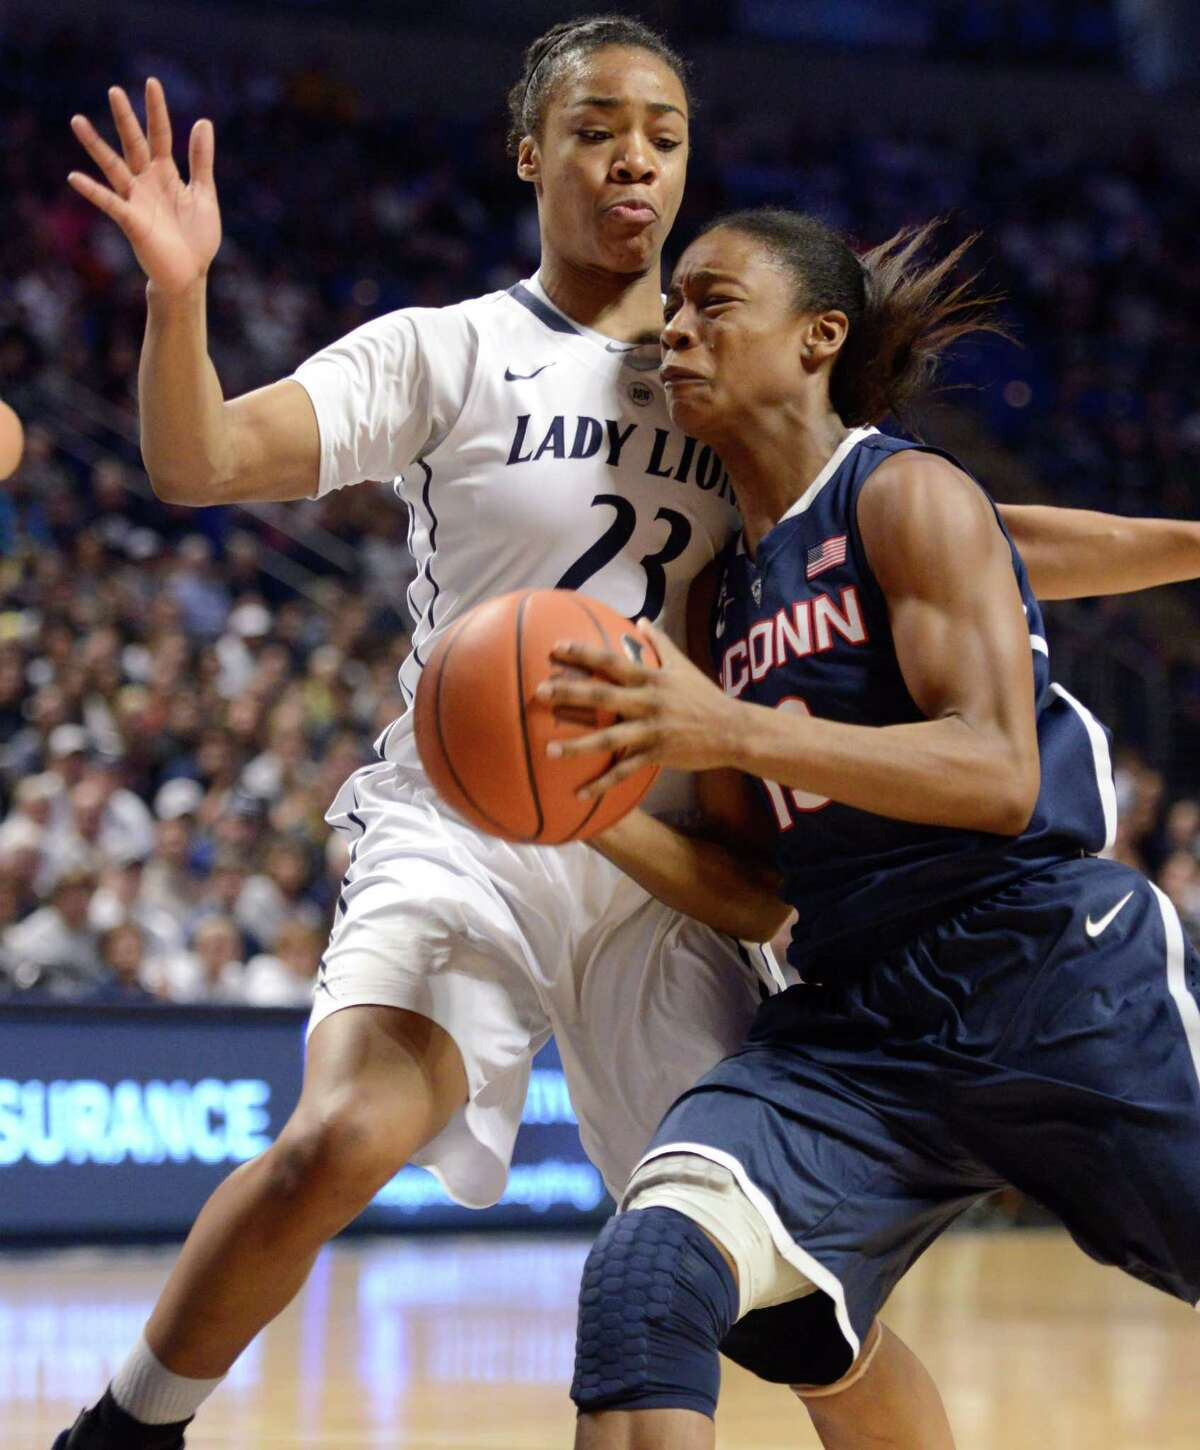 Connecticut's Brianna Banks, right, tries to elude Penn State's Ariel Edwards (23) during the first half of an NCAA college basketball game, Sunday, Nov. 17, 2013, in State College, Pa.